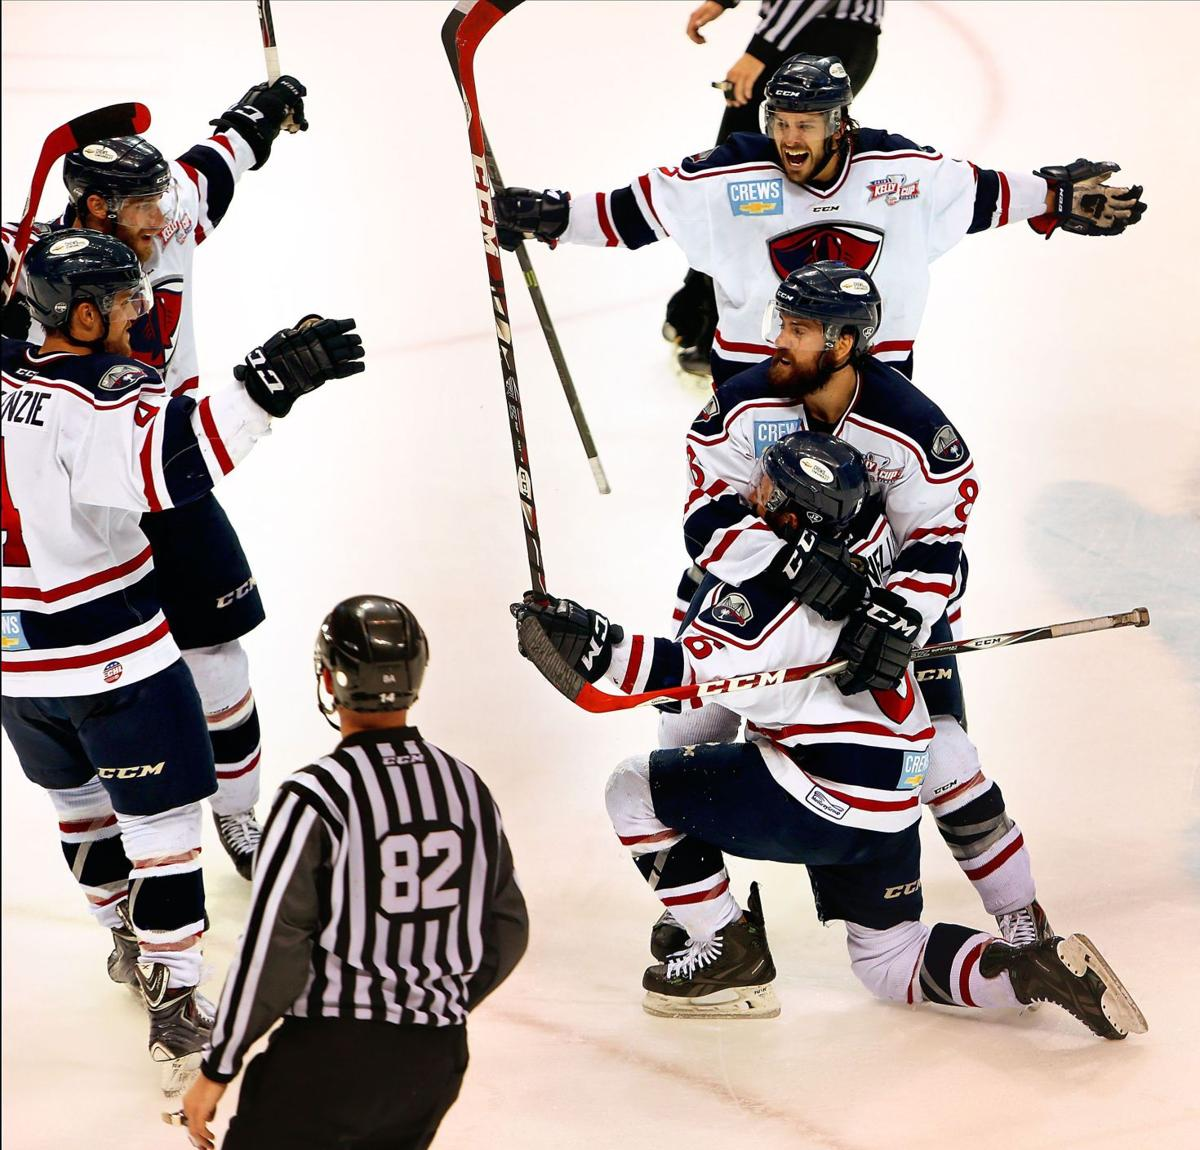 Stingrays' 'special season' comes to disappointing end in Game 7